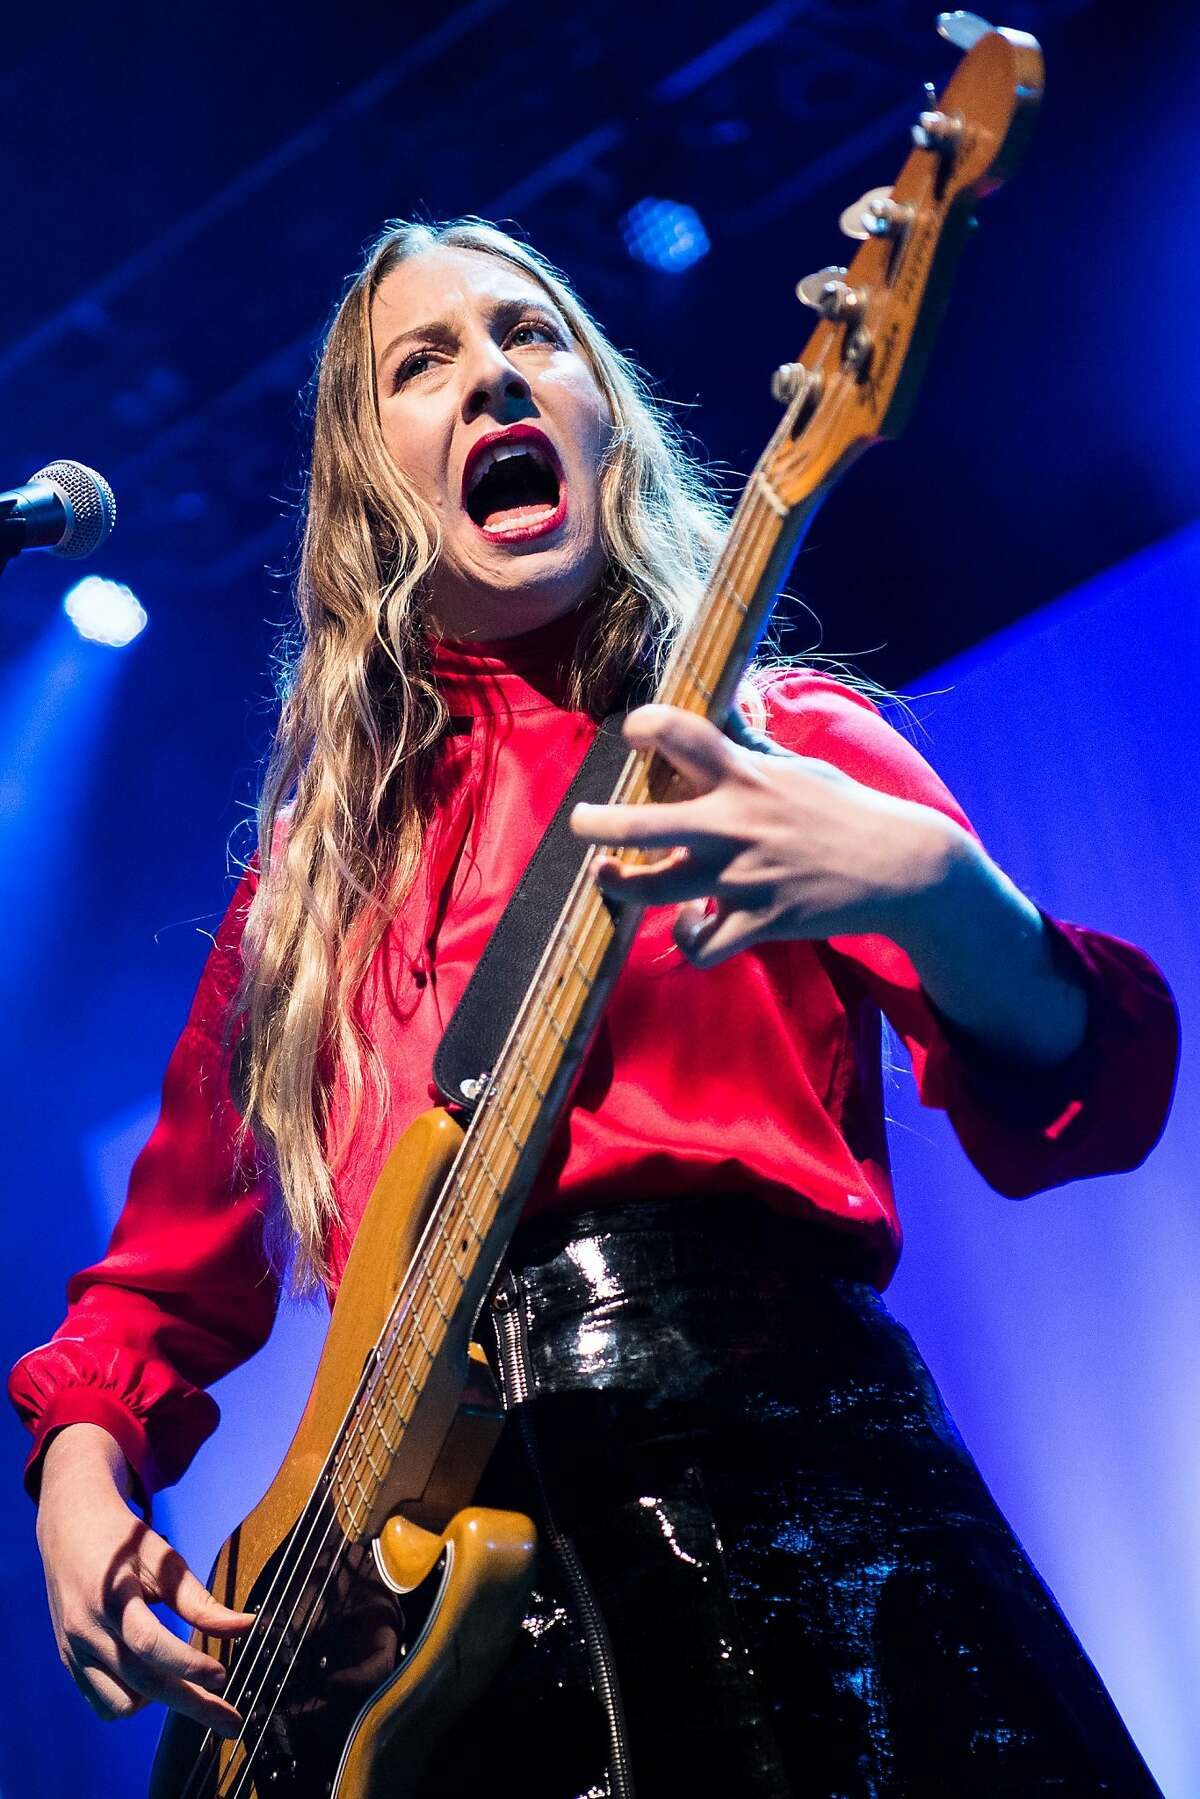 LOS ANGELES, CA - OCTOBER 19: Este Haim of HAIM performs onstage at The Greek Theatre on October 19, 2017 in Los Angeles, California. (Photo by Emma McIntyre/Getty Images)